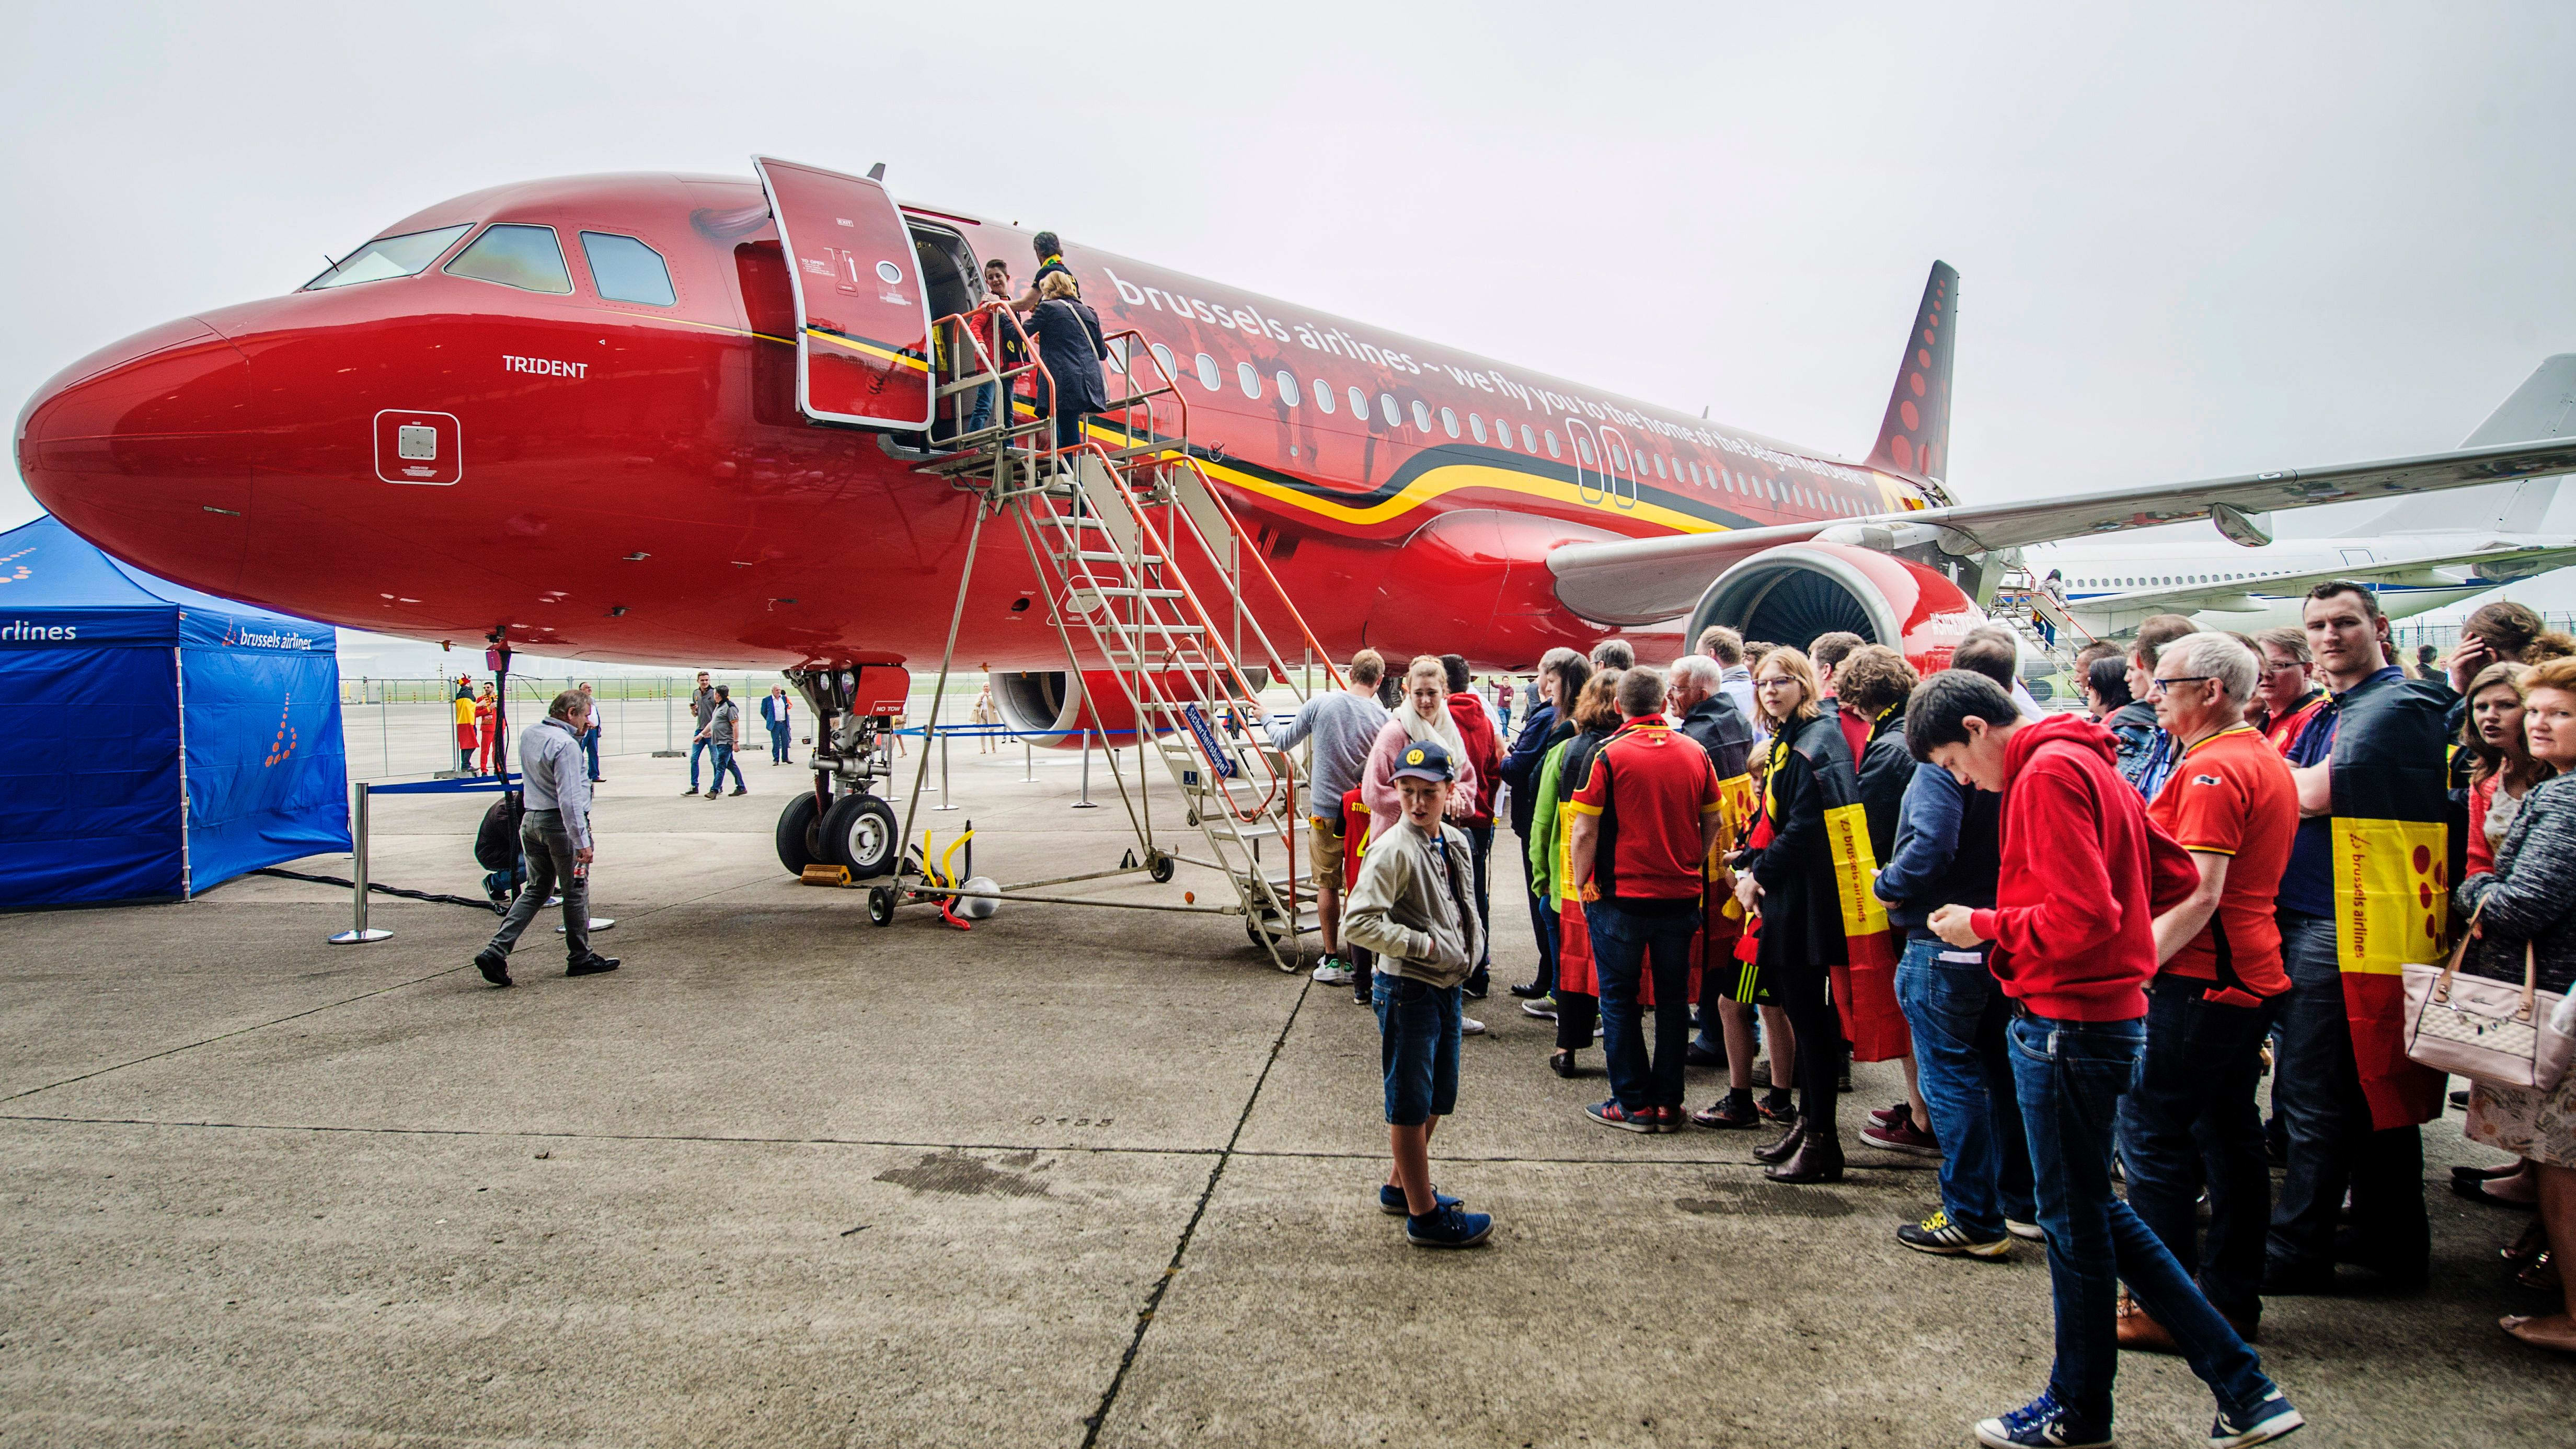 This picture taken on June 5, 2016 shows the Red Devils airplane of Brussels Airlines presented to some 500 fans of the Belgian national soccer team at Brussels airport in Zaventem. / AFP / BELGA / FILIP DE SMET / Belgium OUT        (Photo credit should read FILIP DE SMET/AFP/Getty Images)